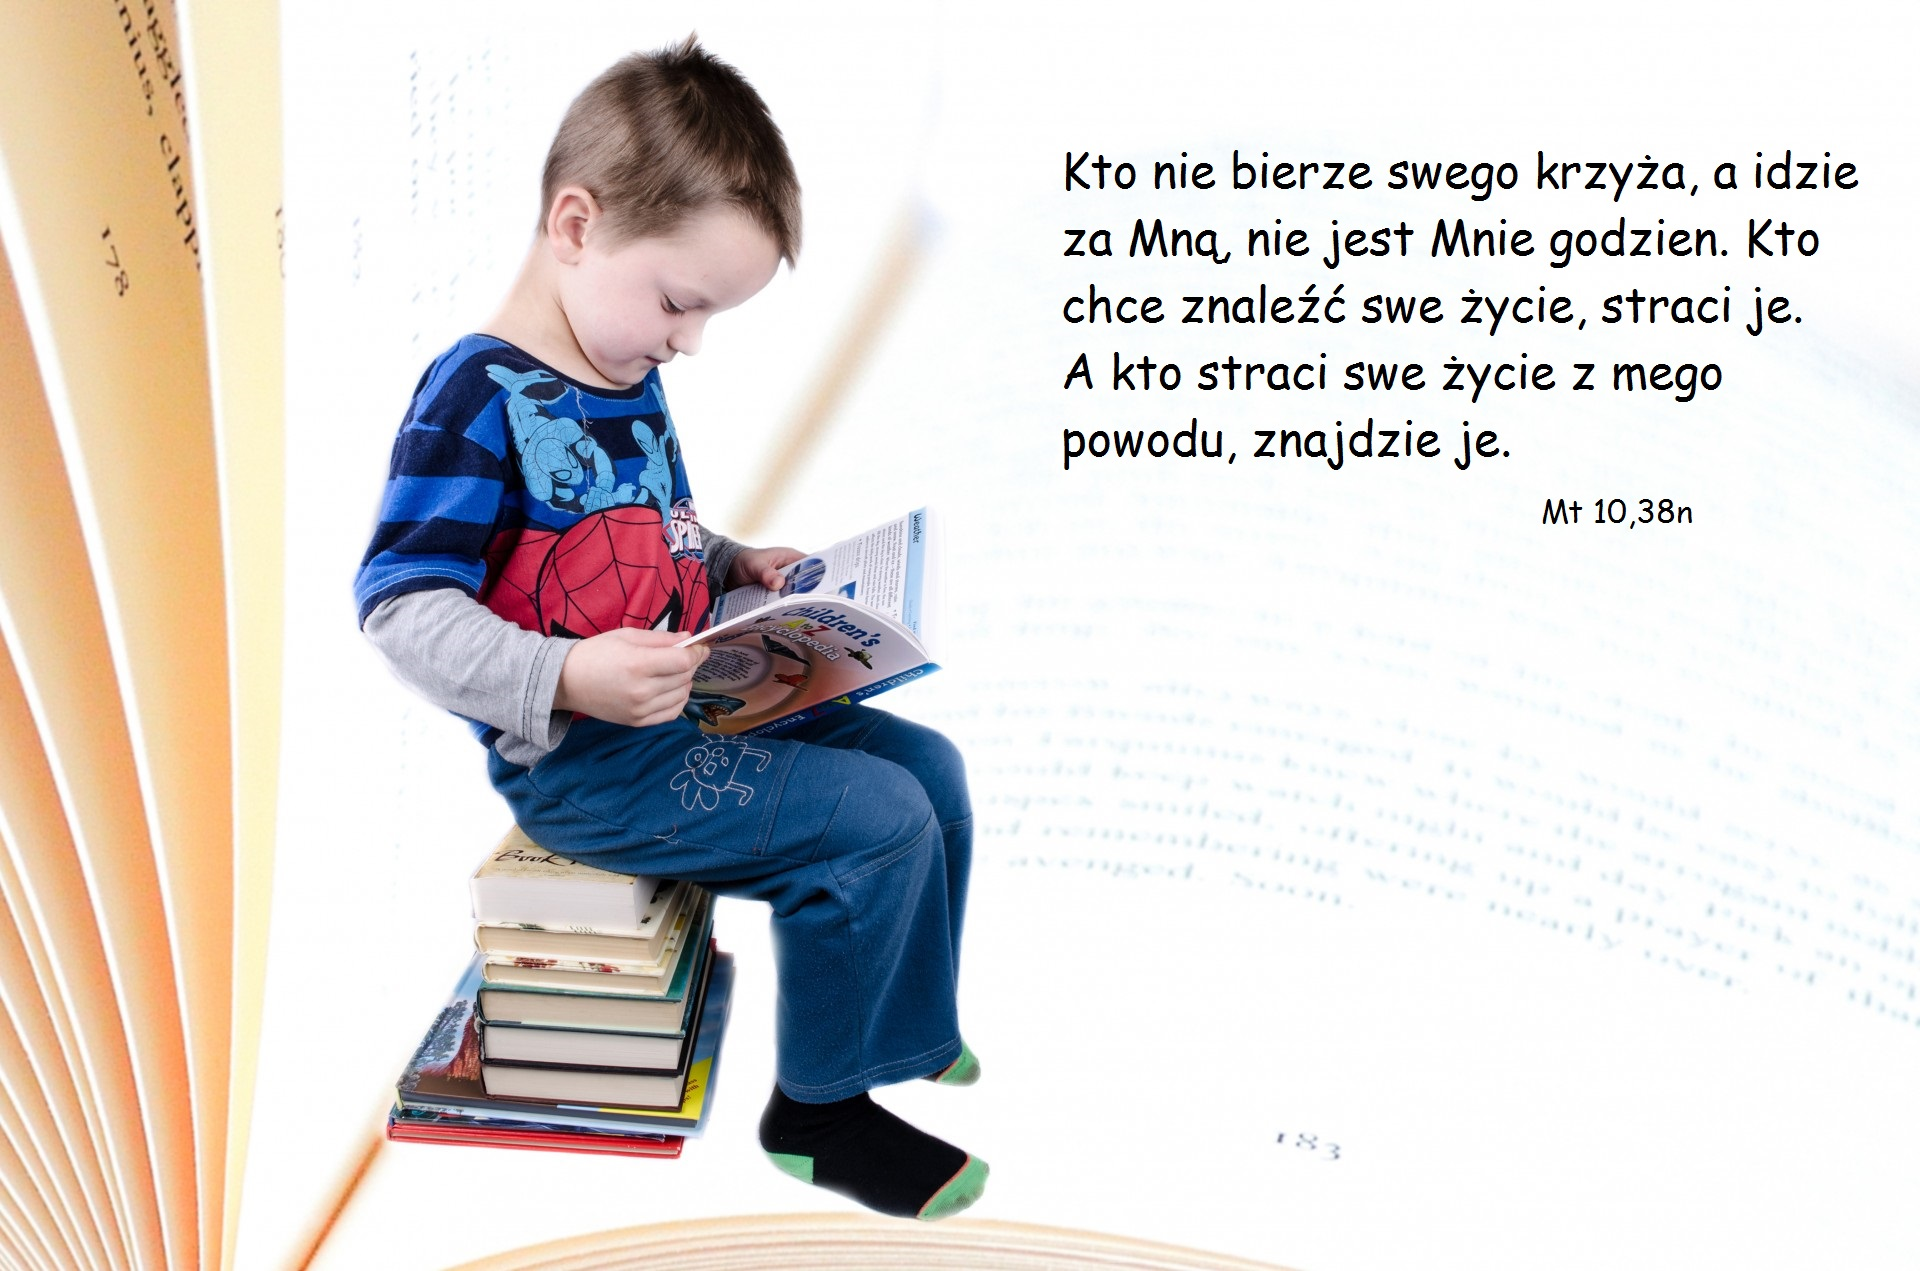 schoolboy-is-sitting-on-books-1388234316Wm8